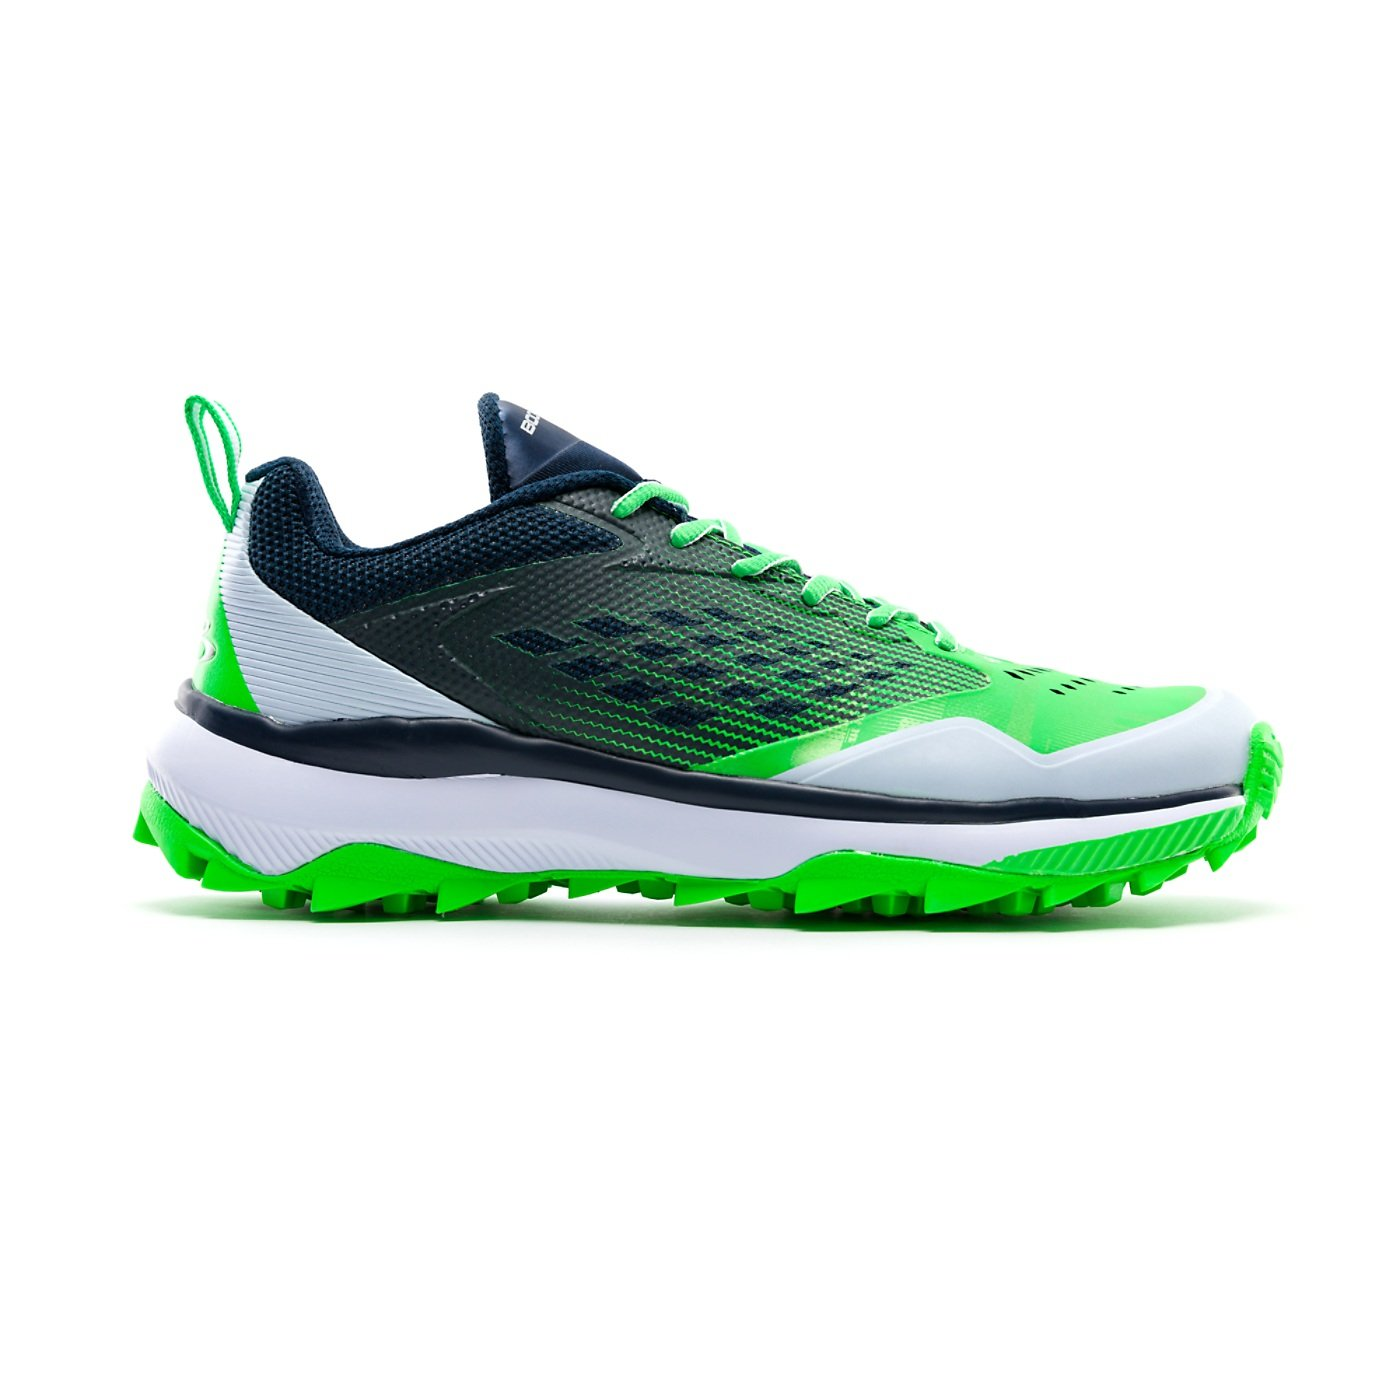 Boombah Men 's Marauder Turf Shoes – 8カラーオプション – 複数のサイズ B07C9J6WK6 8.5|Navy/Lime Green Navy/Lime Green 8.5